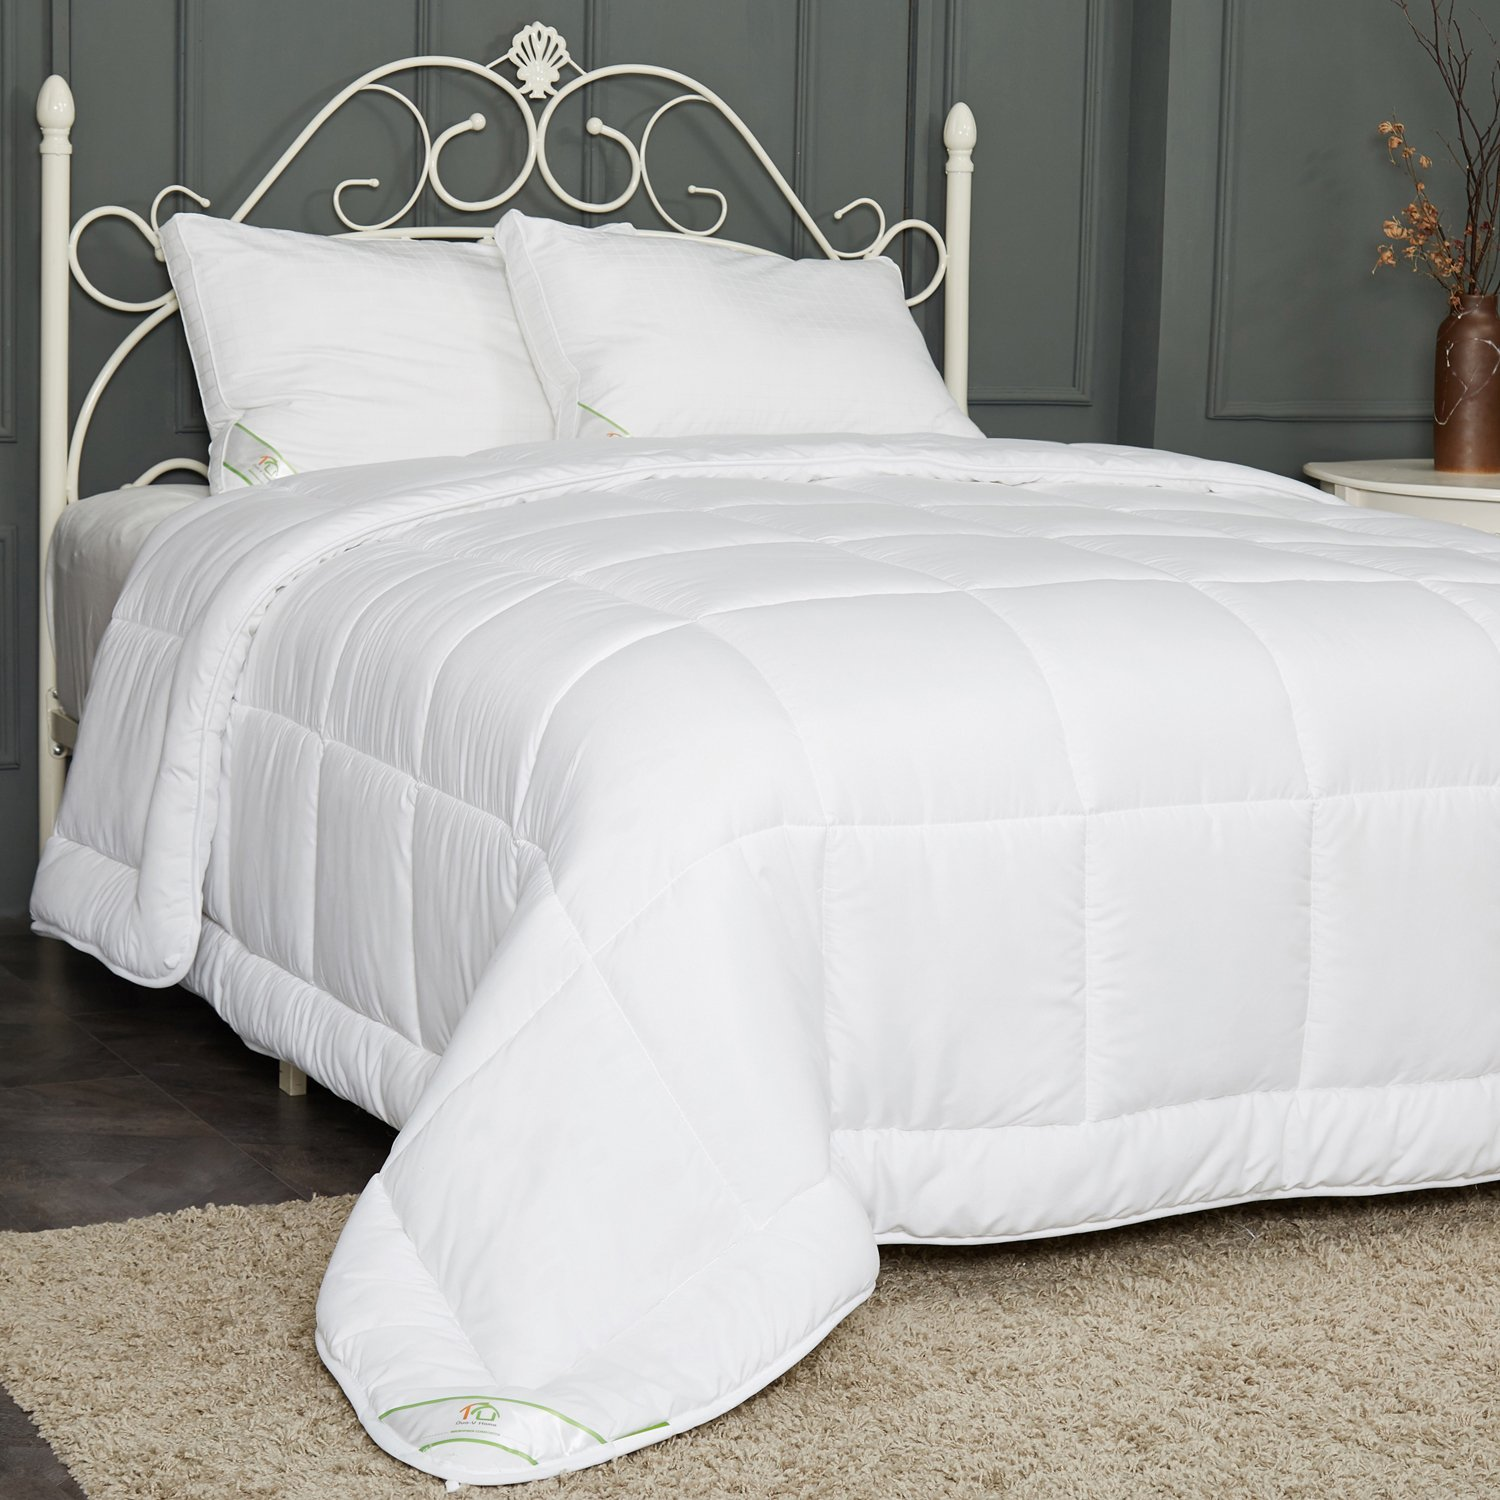 """DUO-V HOME Queen Size White Bed Comforter Down Alternative Duvet Insert with Corner Tabs, Plush Siliconized Fiberfill, Hypoallergenic, Warm, Soft for All Seasons(88""""x88"""")"""